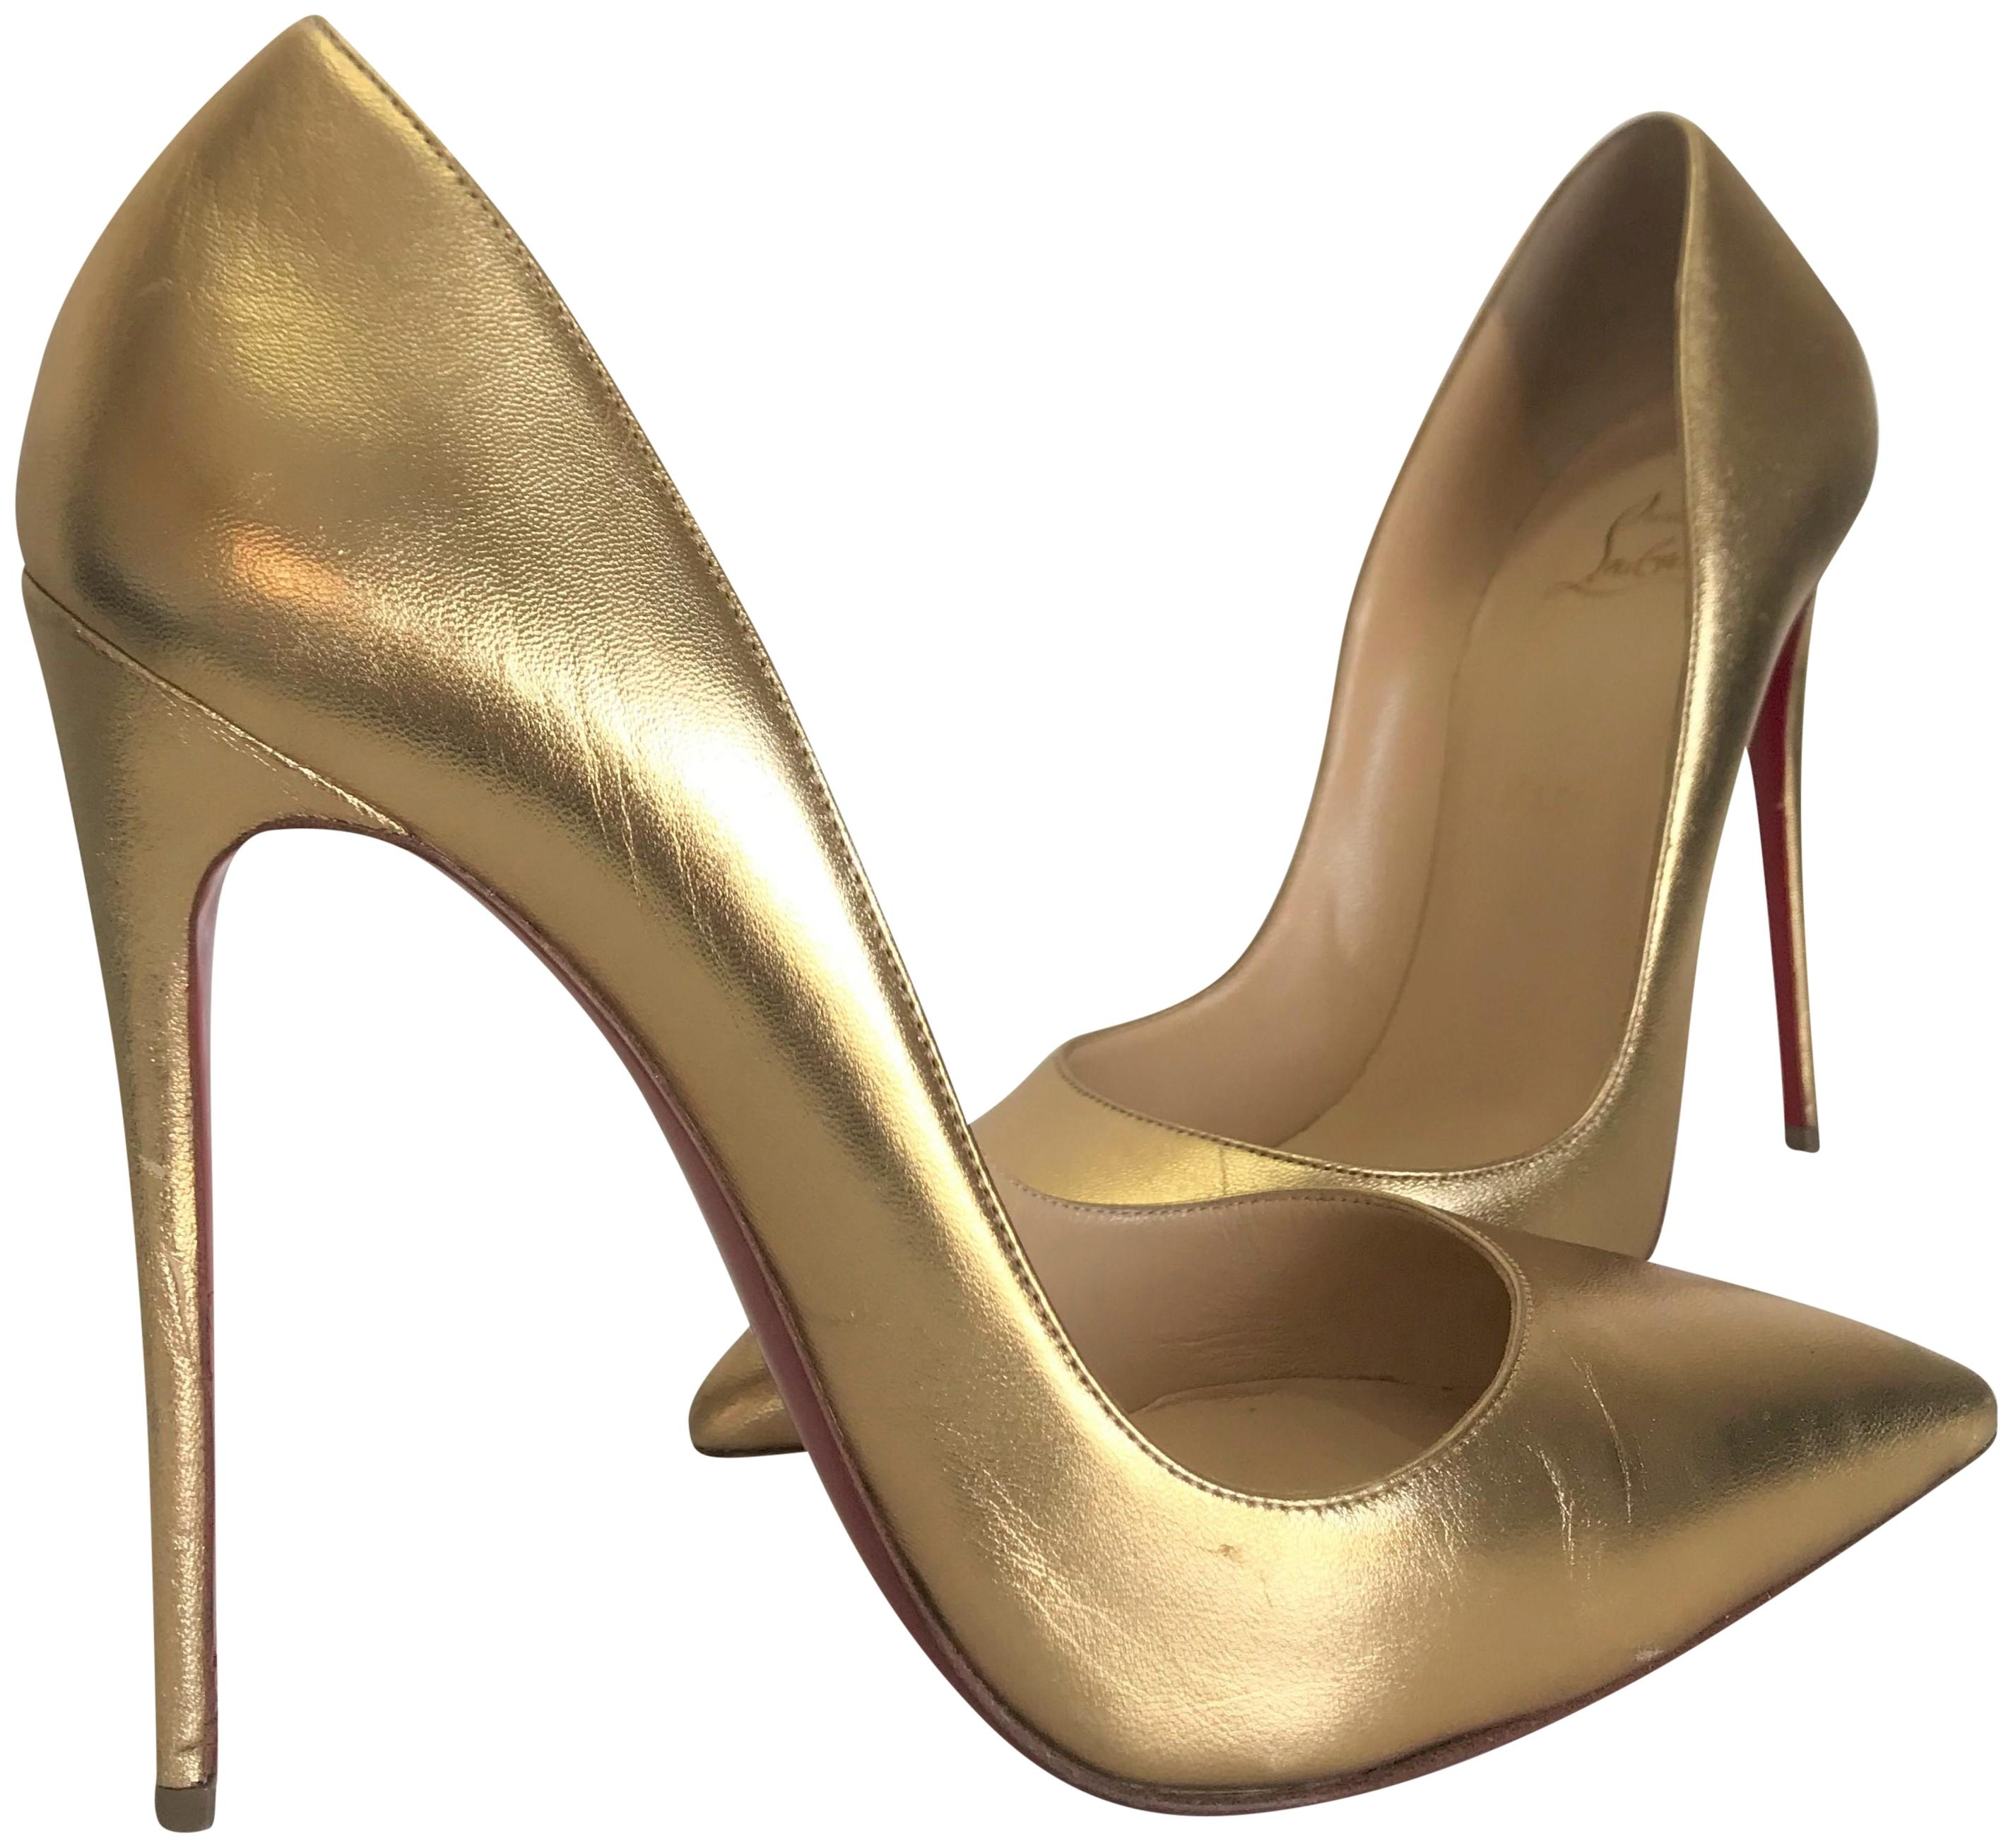 57c03cf00eef ... discount code for christian louboutin bronze specchio so kate pigalle  high heel red sole ankle lady